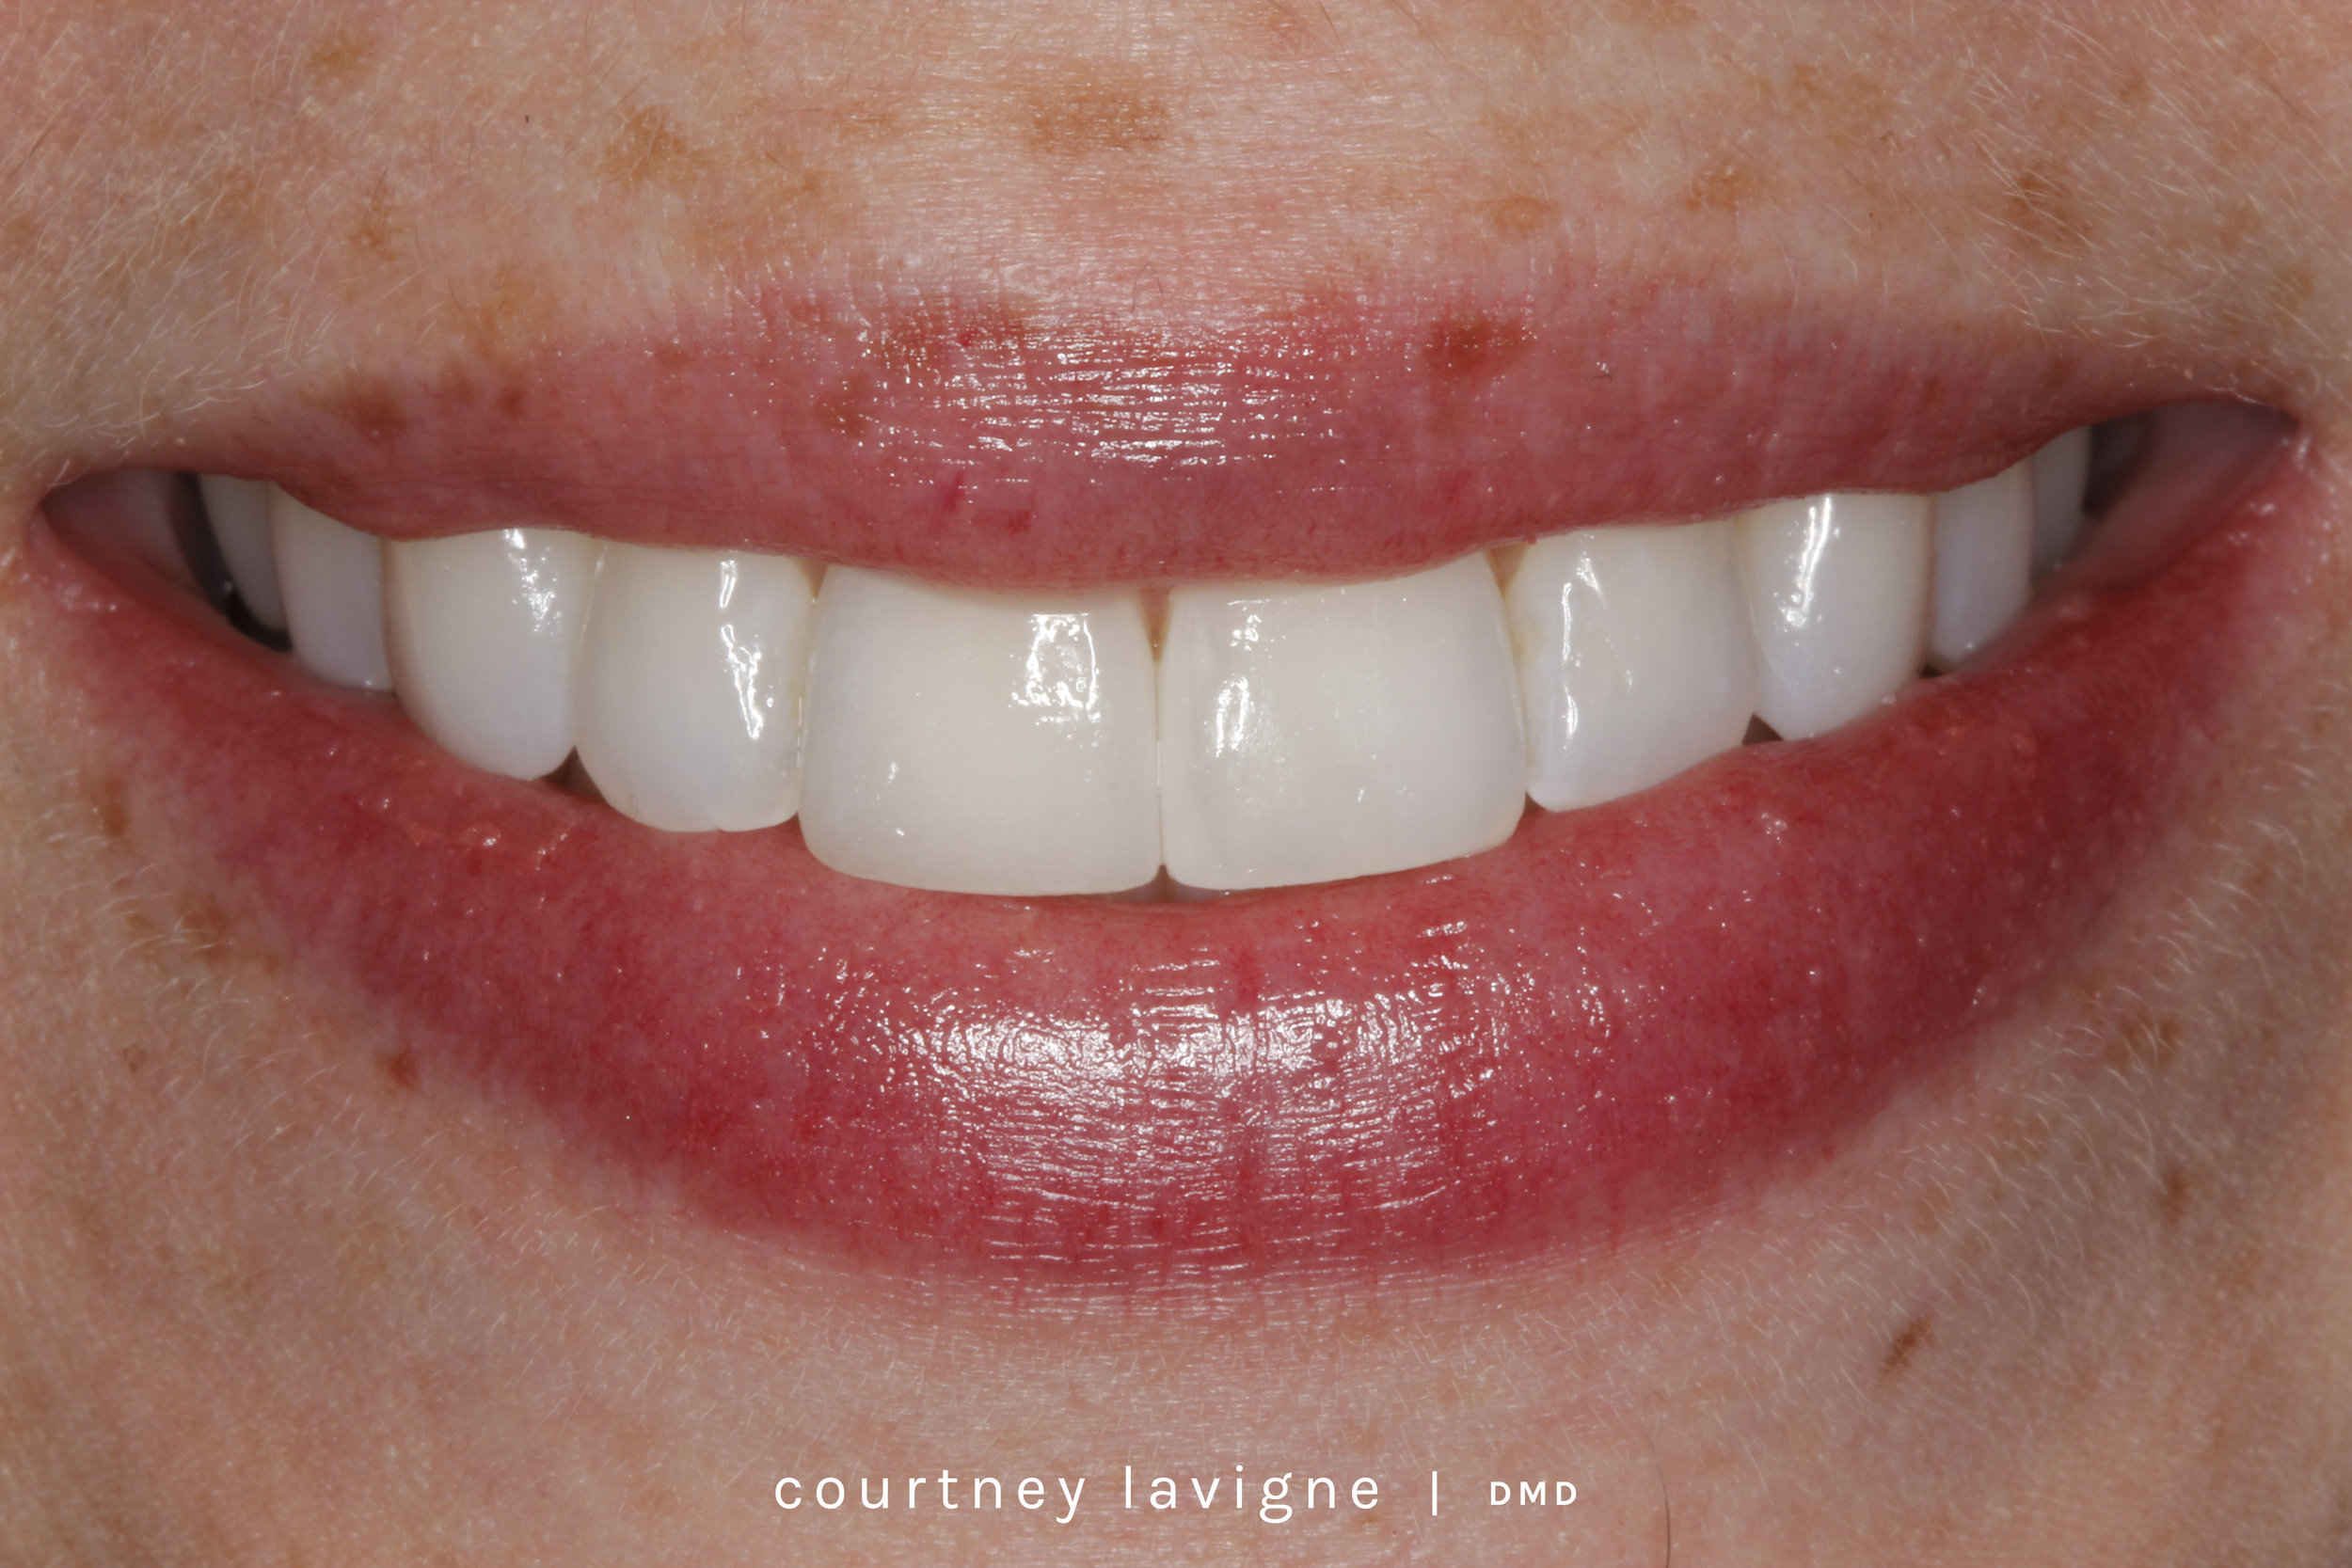 OUR WORK - Whether you're looking for a minor fix to one tooth or an entire smile makeover, Dr. Lavigne has a profound passion for the art and science of smile design. View the before and after work of Dr. Lavigne on real patients she has treated.